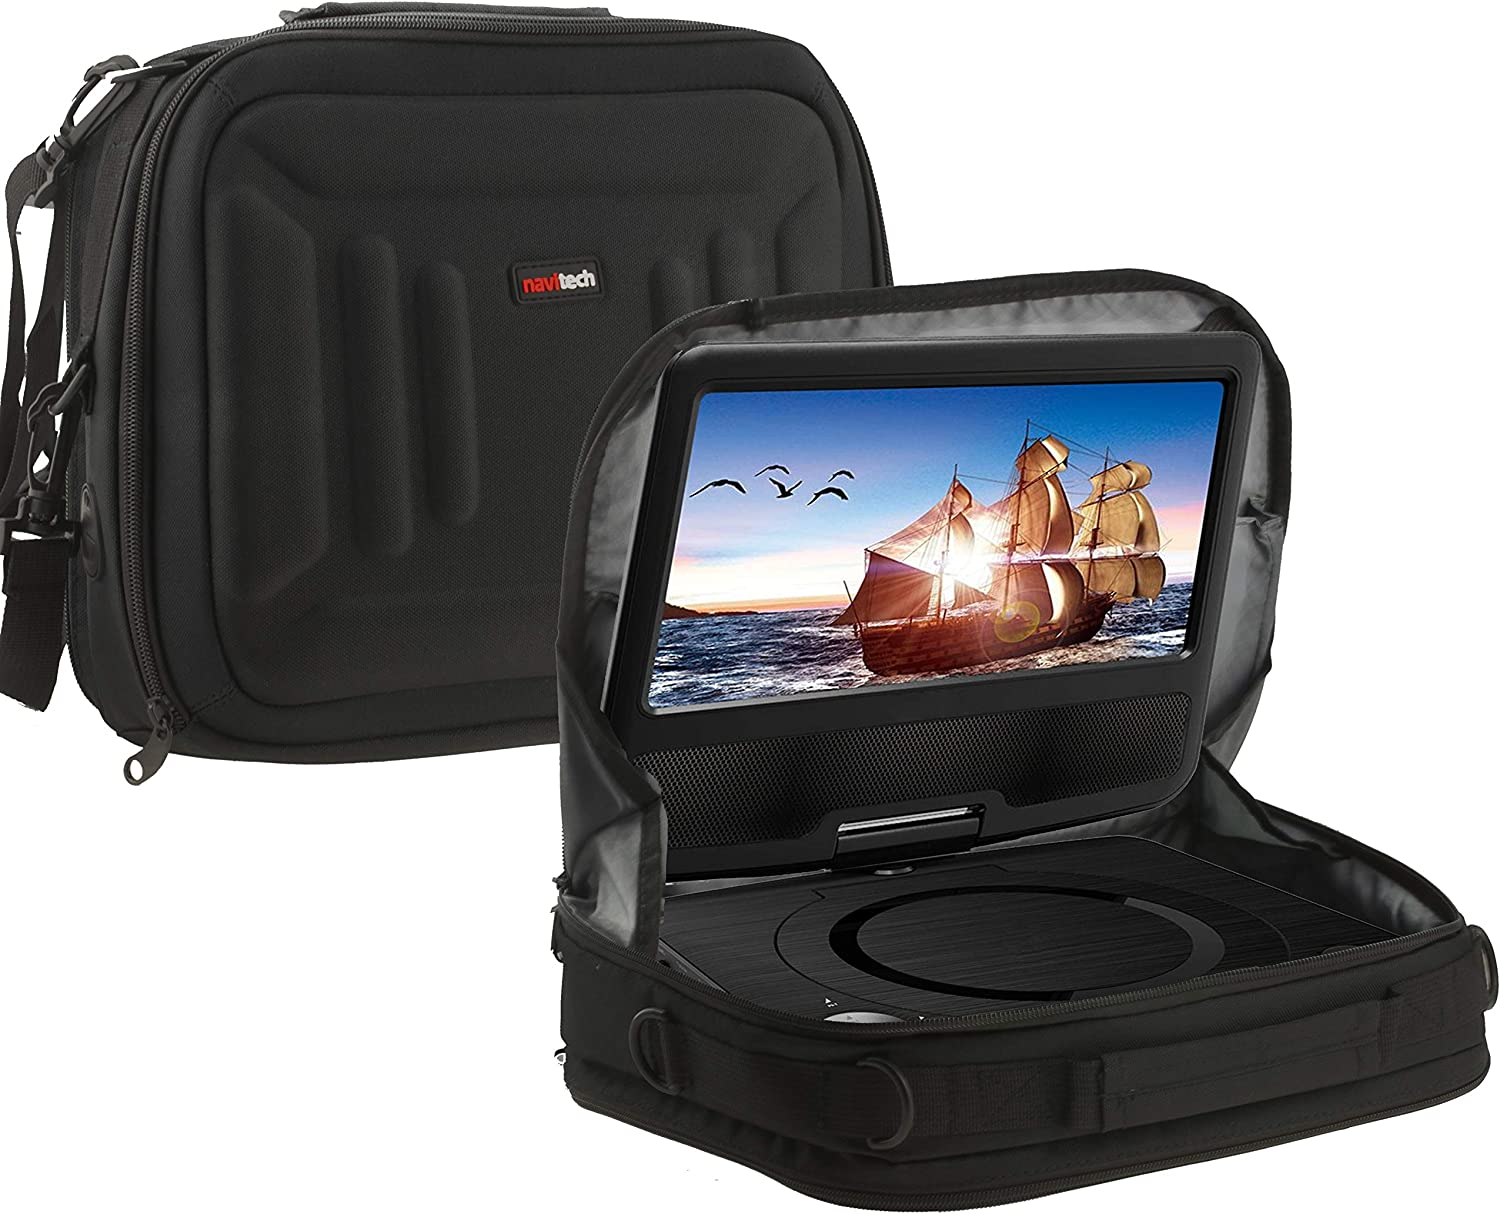 Navitech Branded goods Portable DVD Player Headrest Carry Mount Al sold out. Case Car Compa